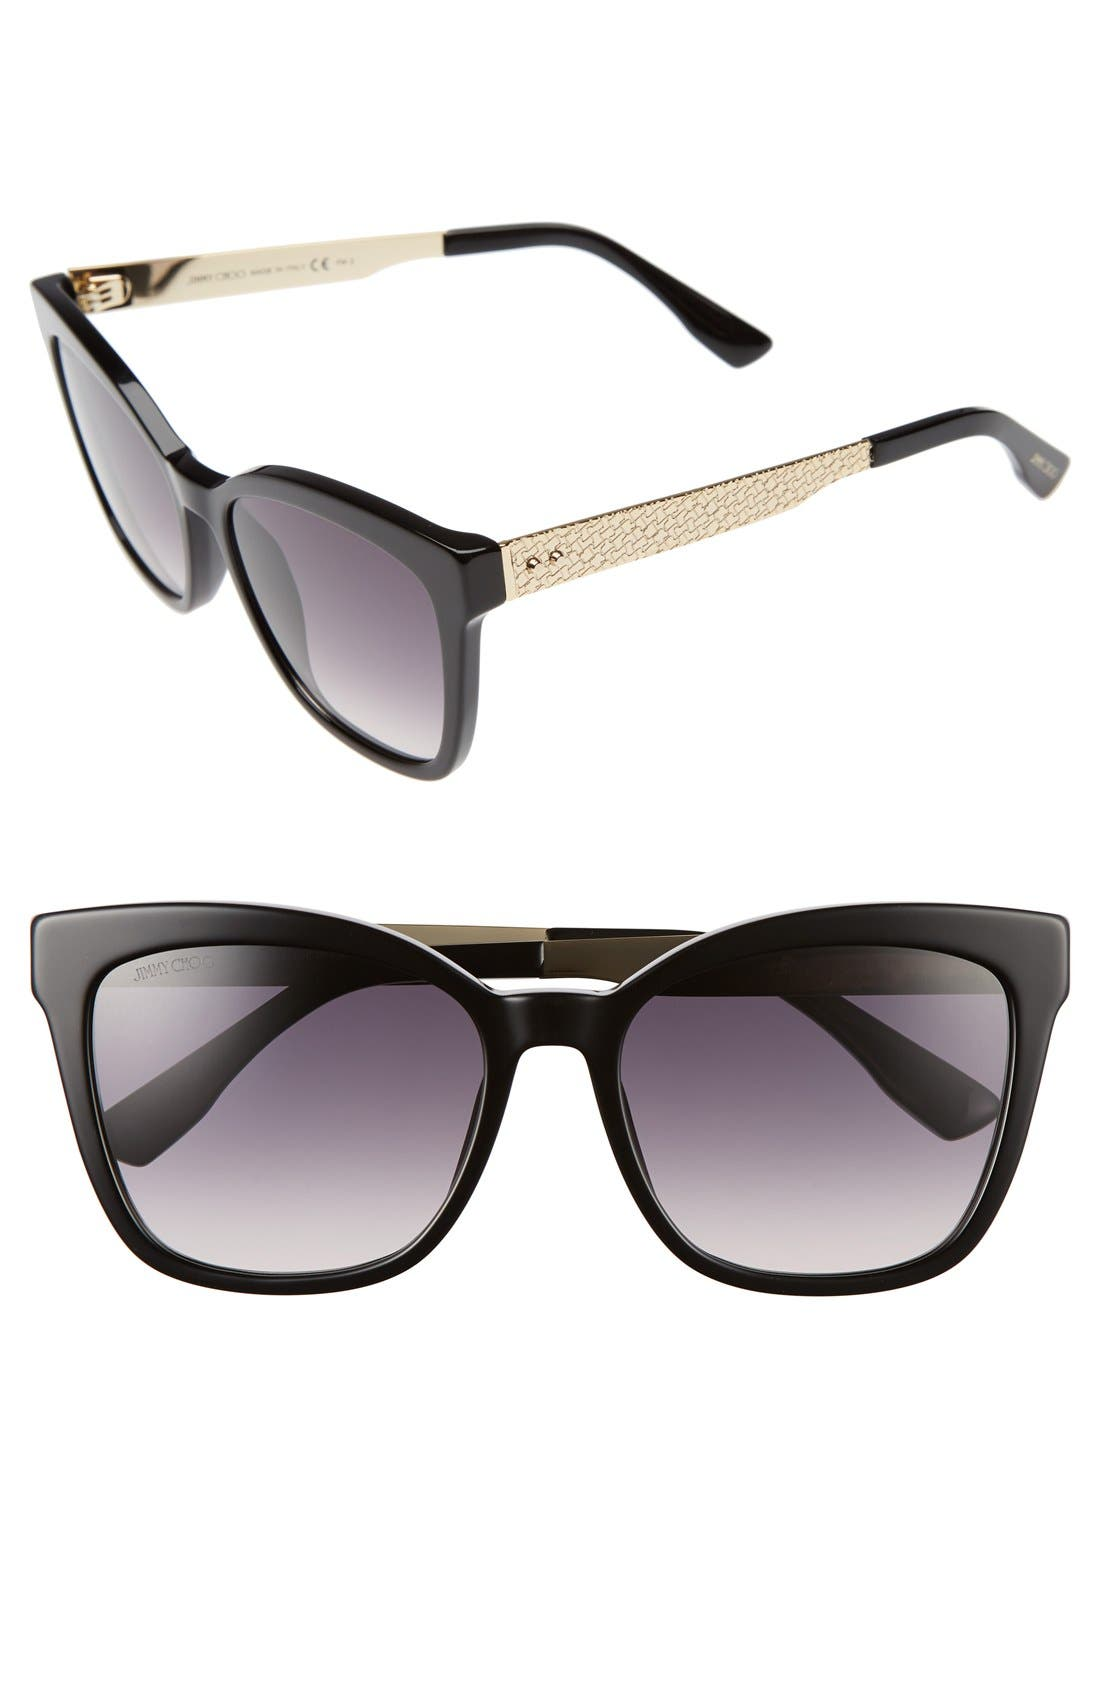 Alternate Image 1 Selected - Jimmy Choo 55mm Retro Sunglasses